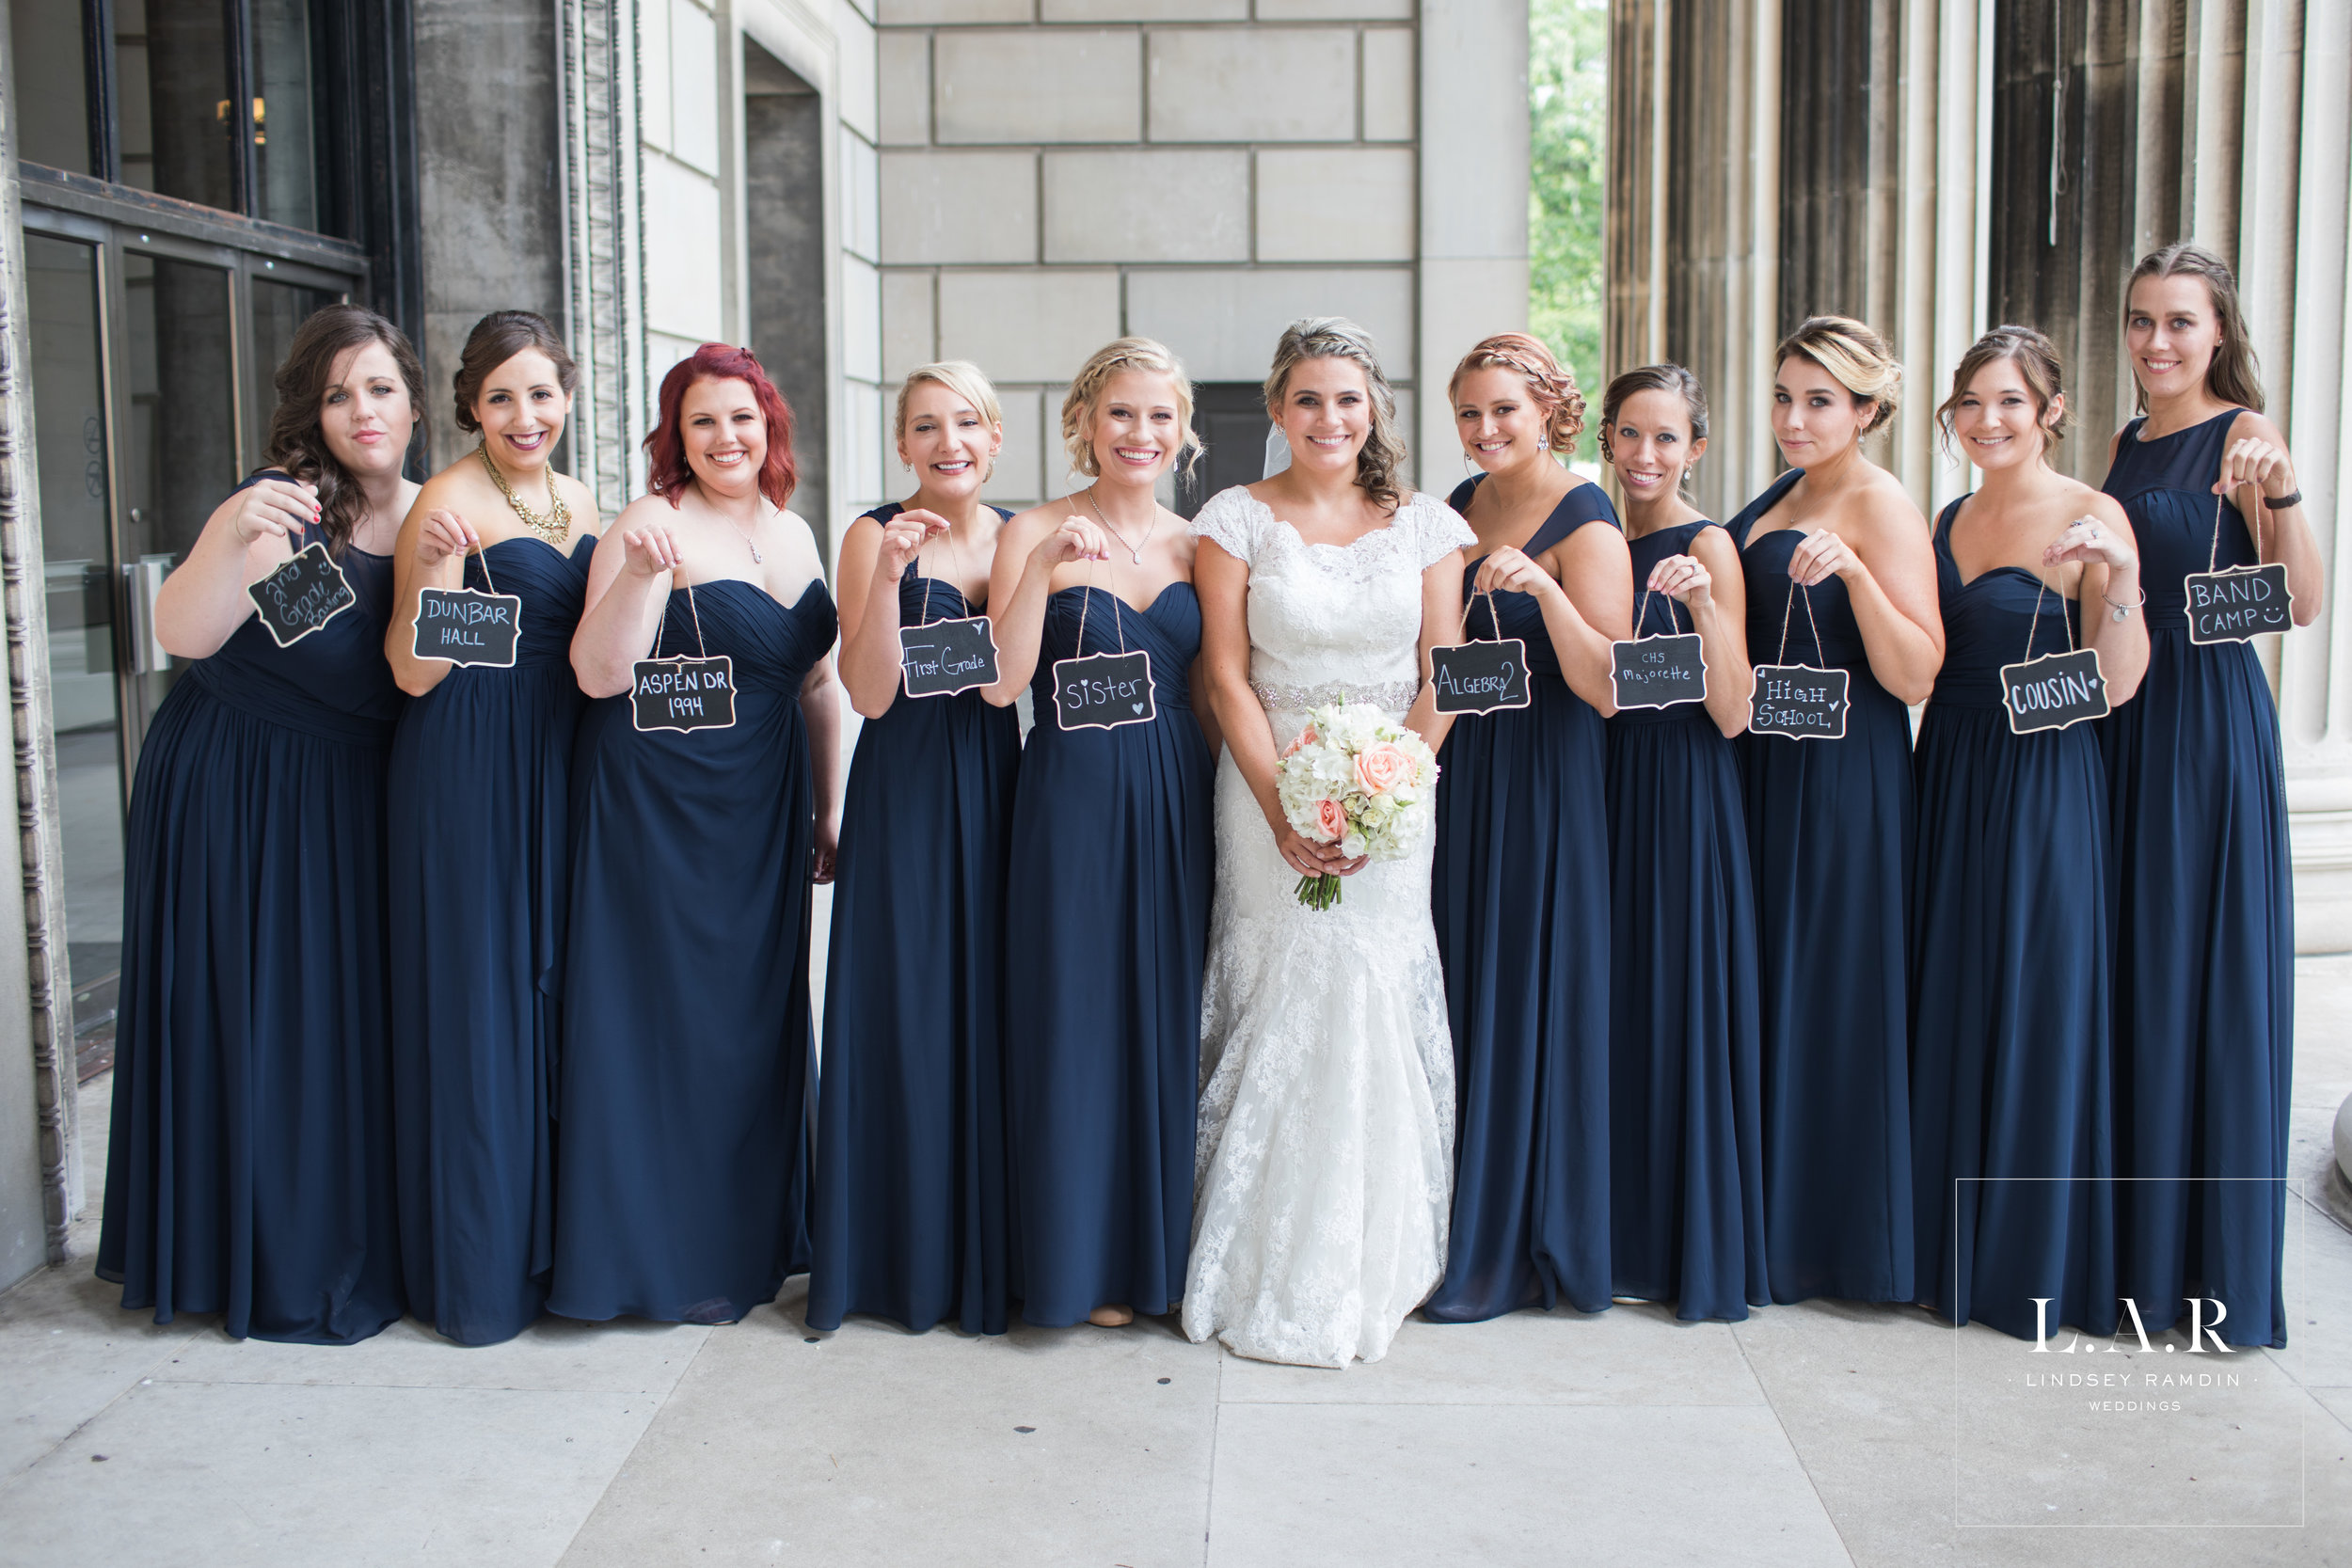 On the signs: How did you meet the bride?